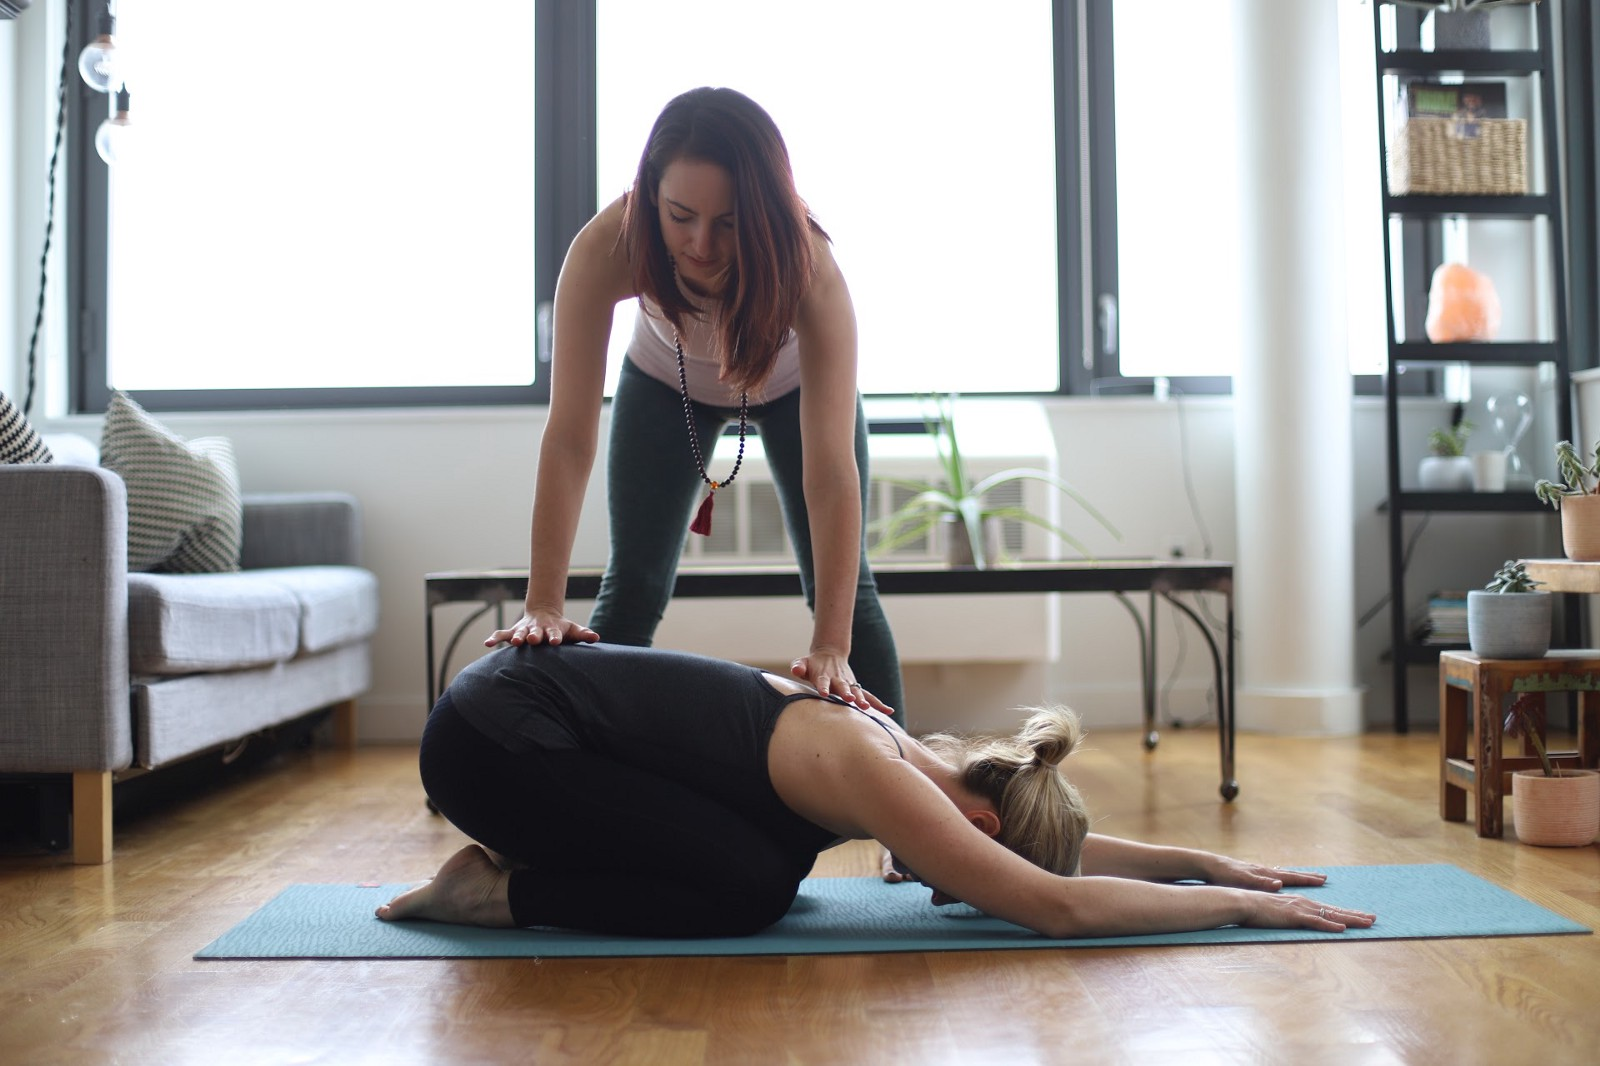 How To Teach Private Yoga Lessons - Emily Sussell - Medium